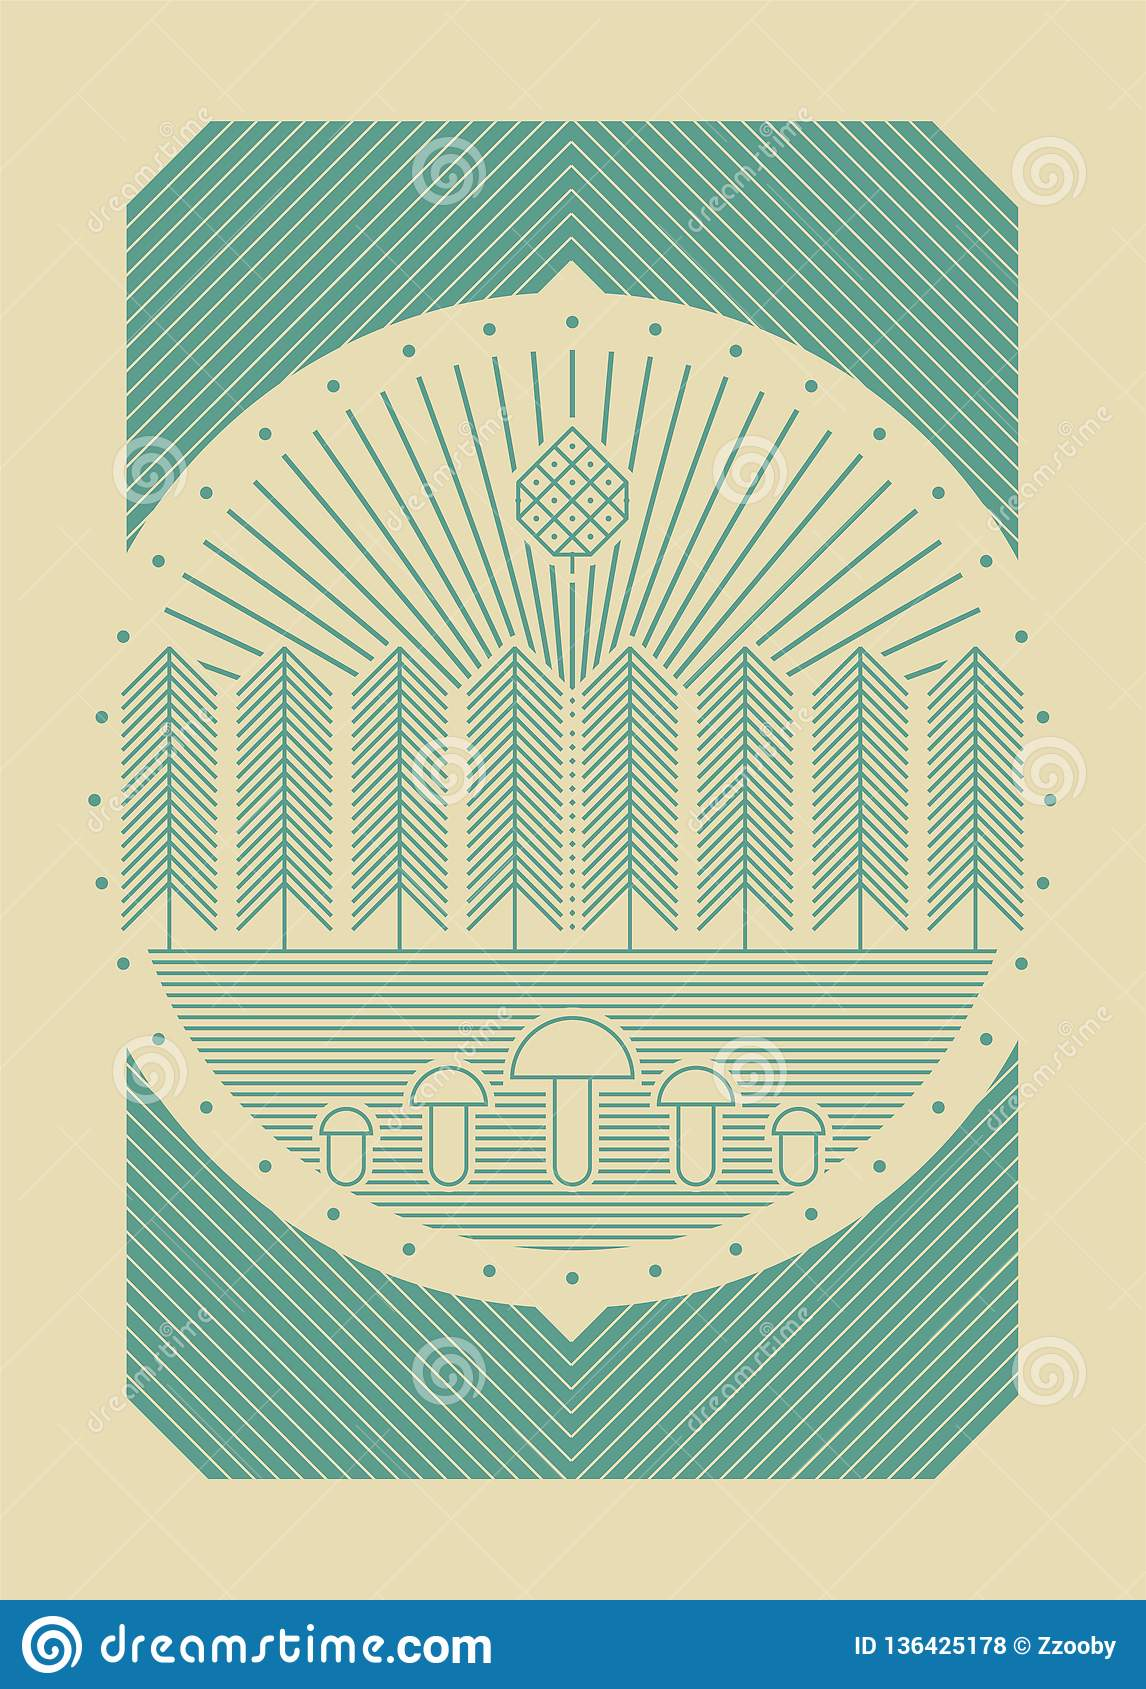 Forest tourism simple graphic linear geometric pattern background. Vector illustration.